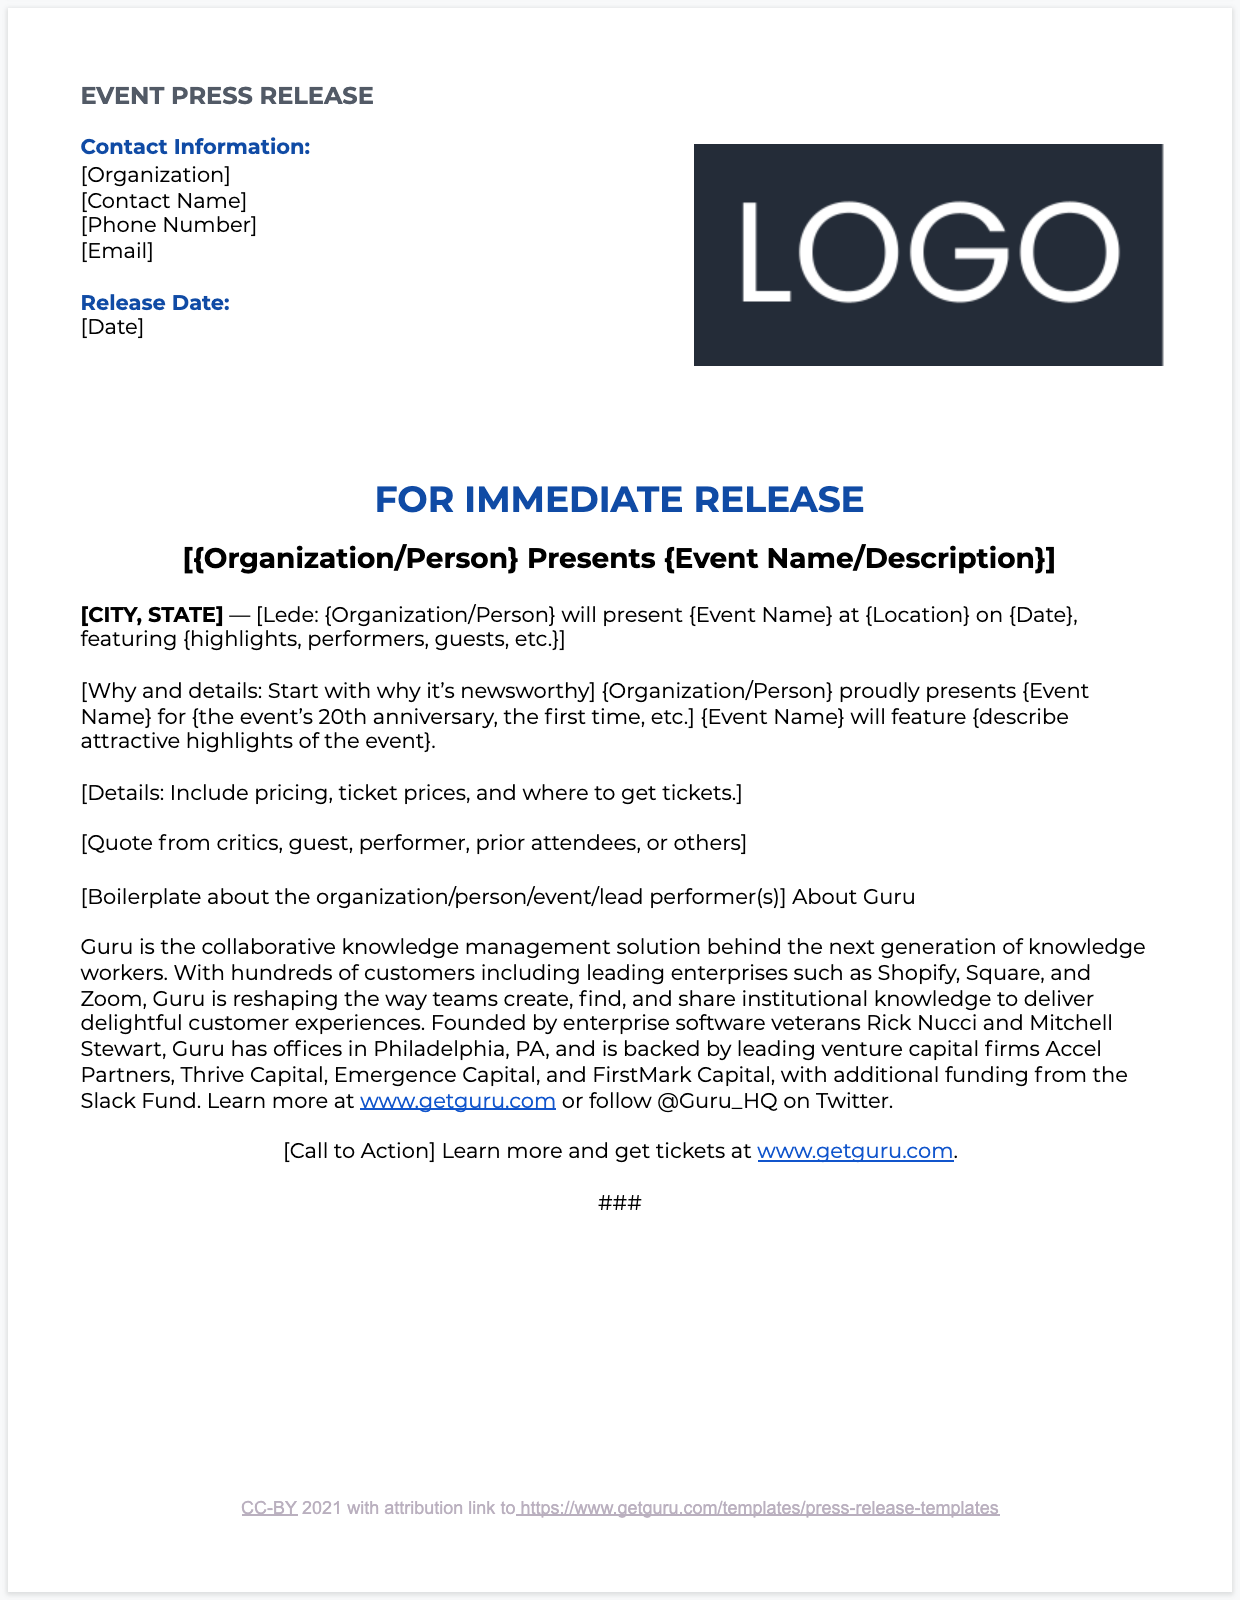 Event Press Release Overview